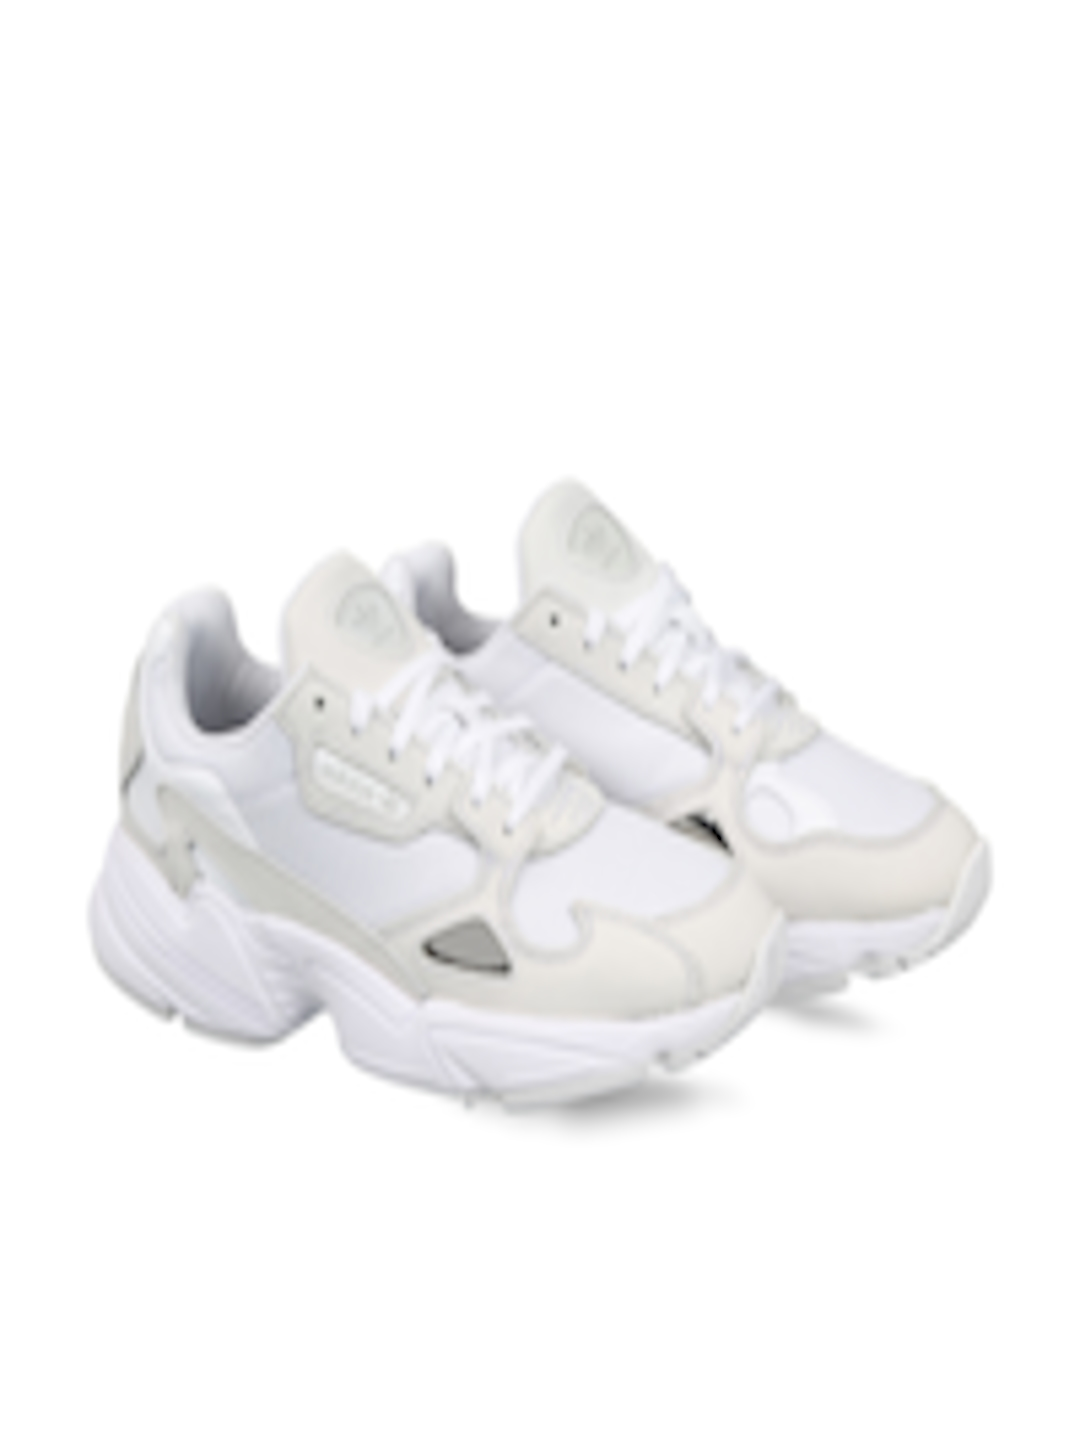 bf4c4aa71070 Buy ADIDAS Originals Women White Falcon Sneakers - Casual Shoes for ...